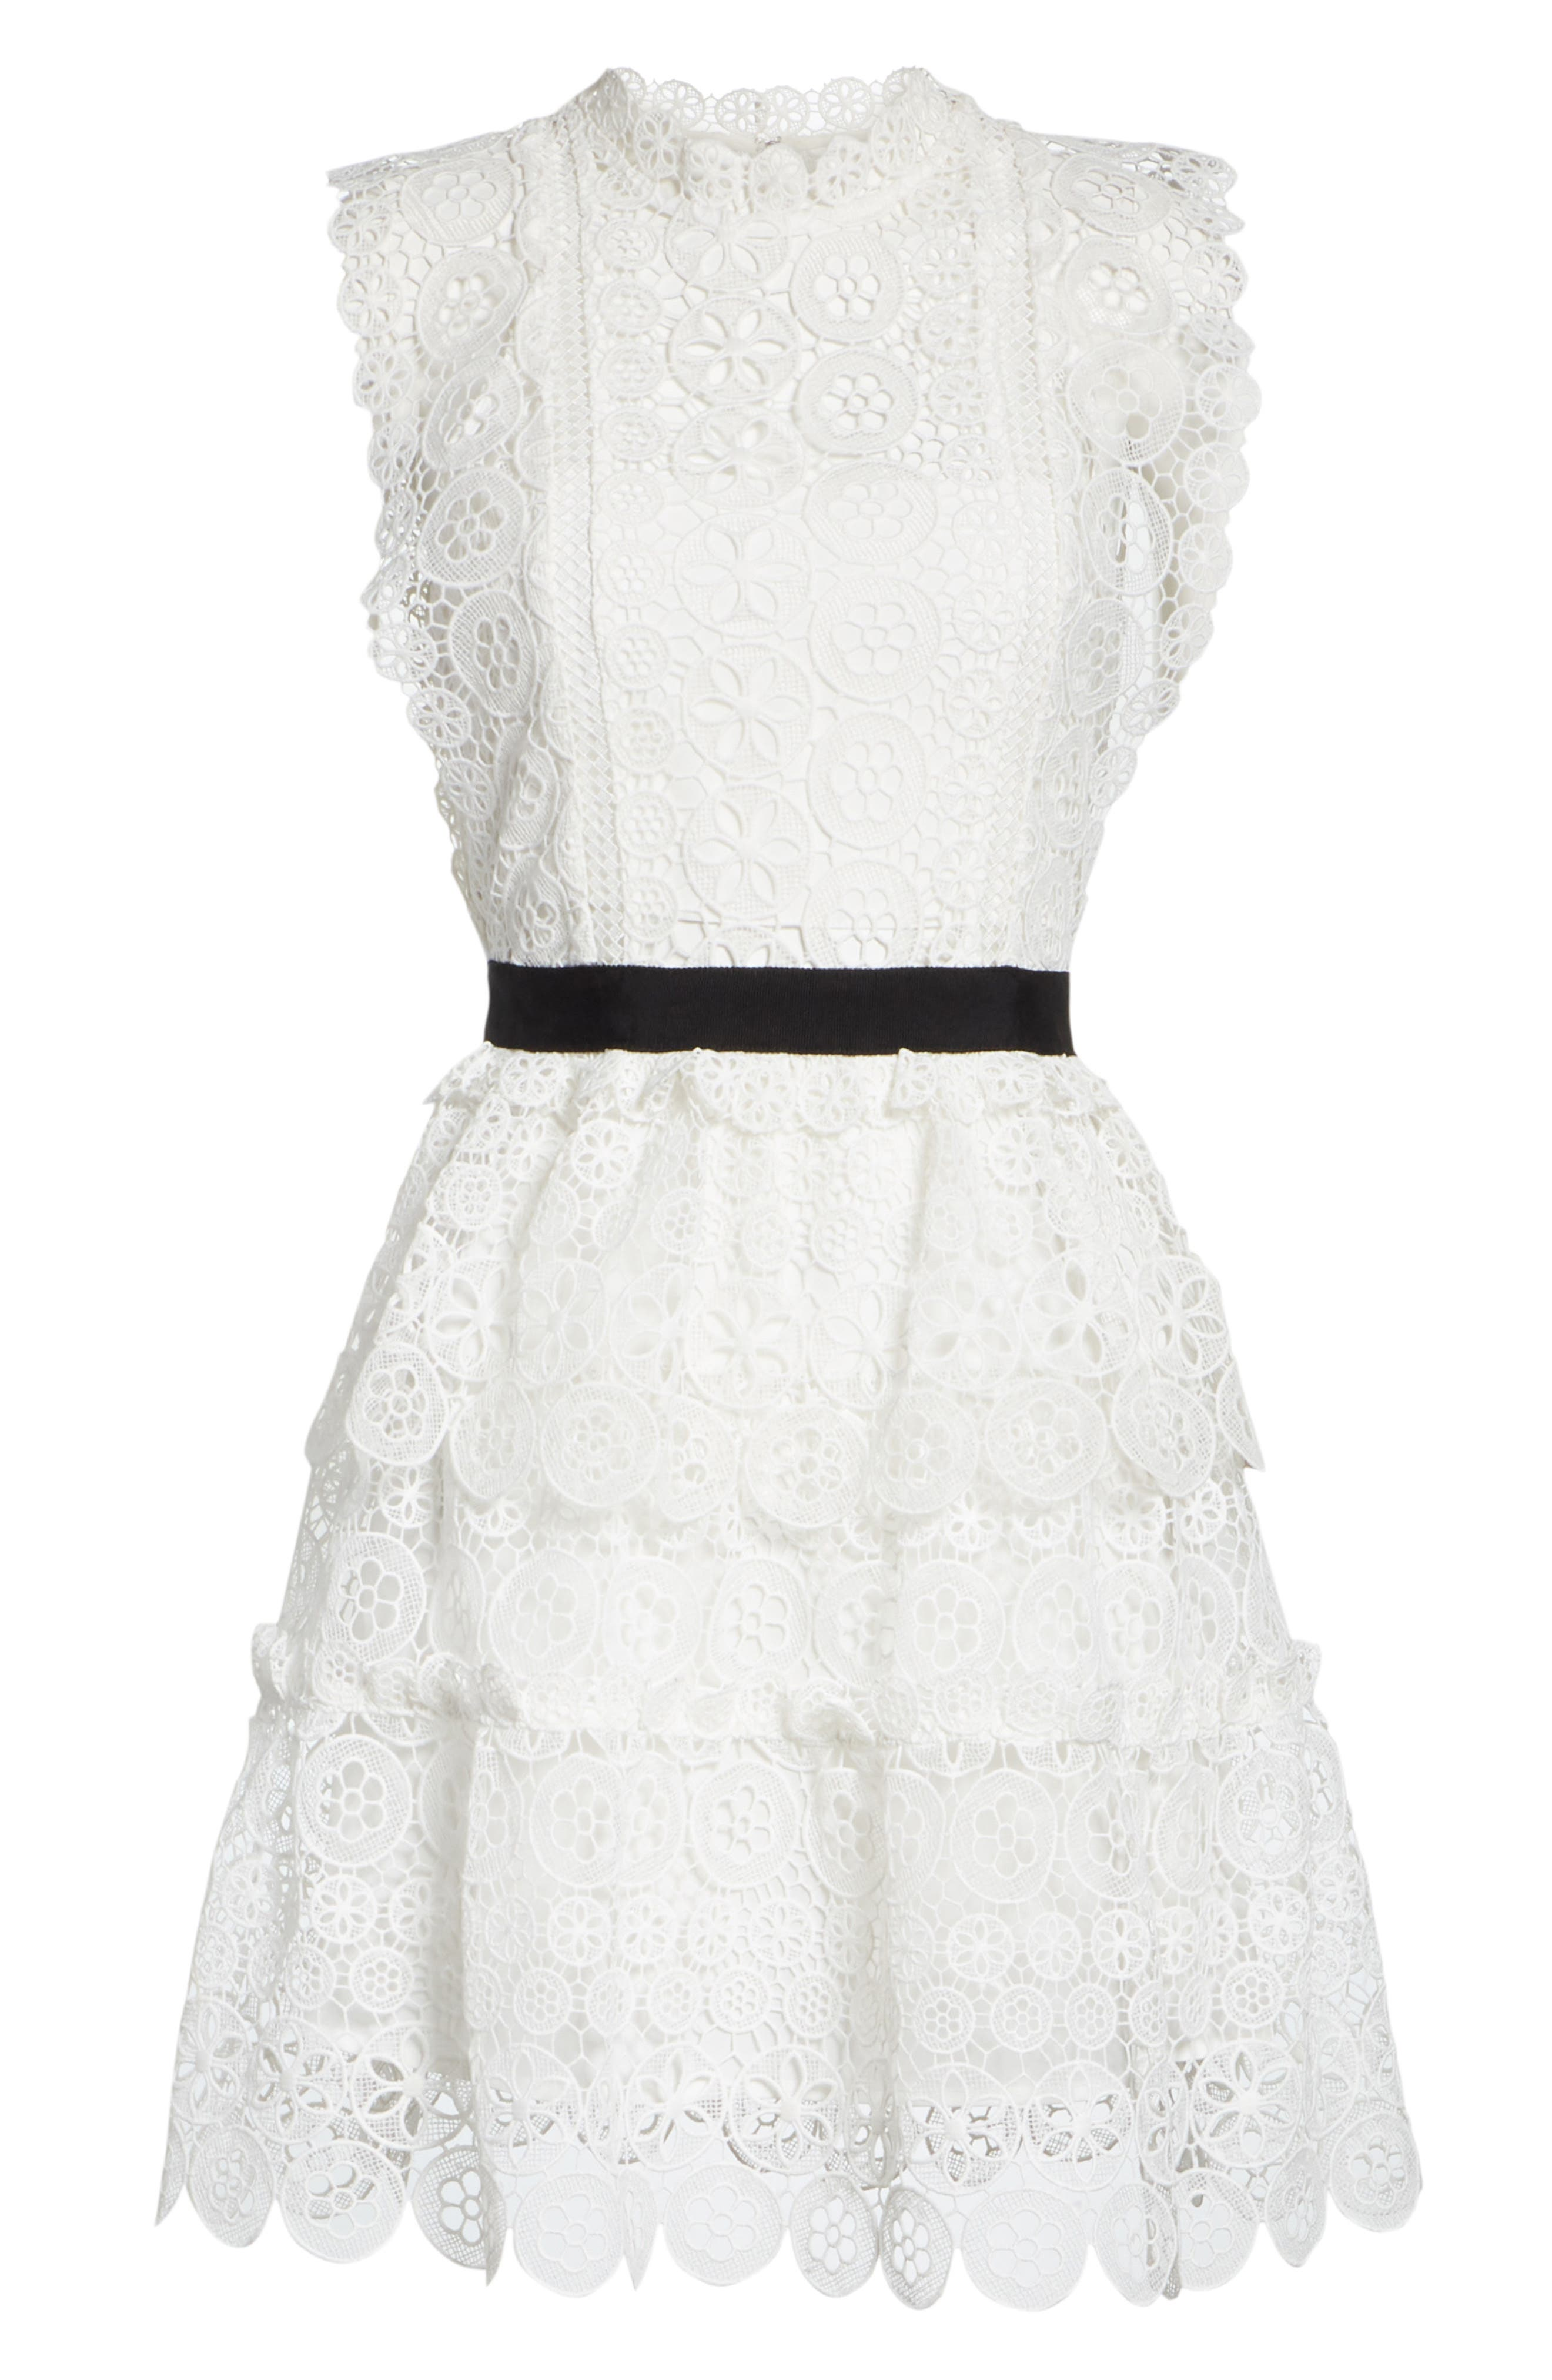 Floral Lace Tiered Dress,                             Alternate thumbnail 6, color,                             100